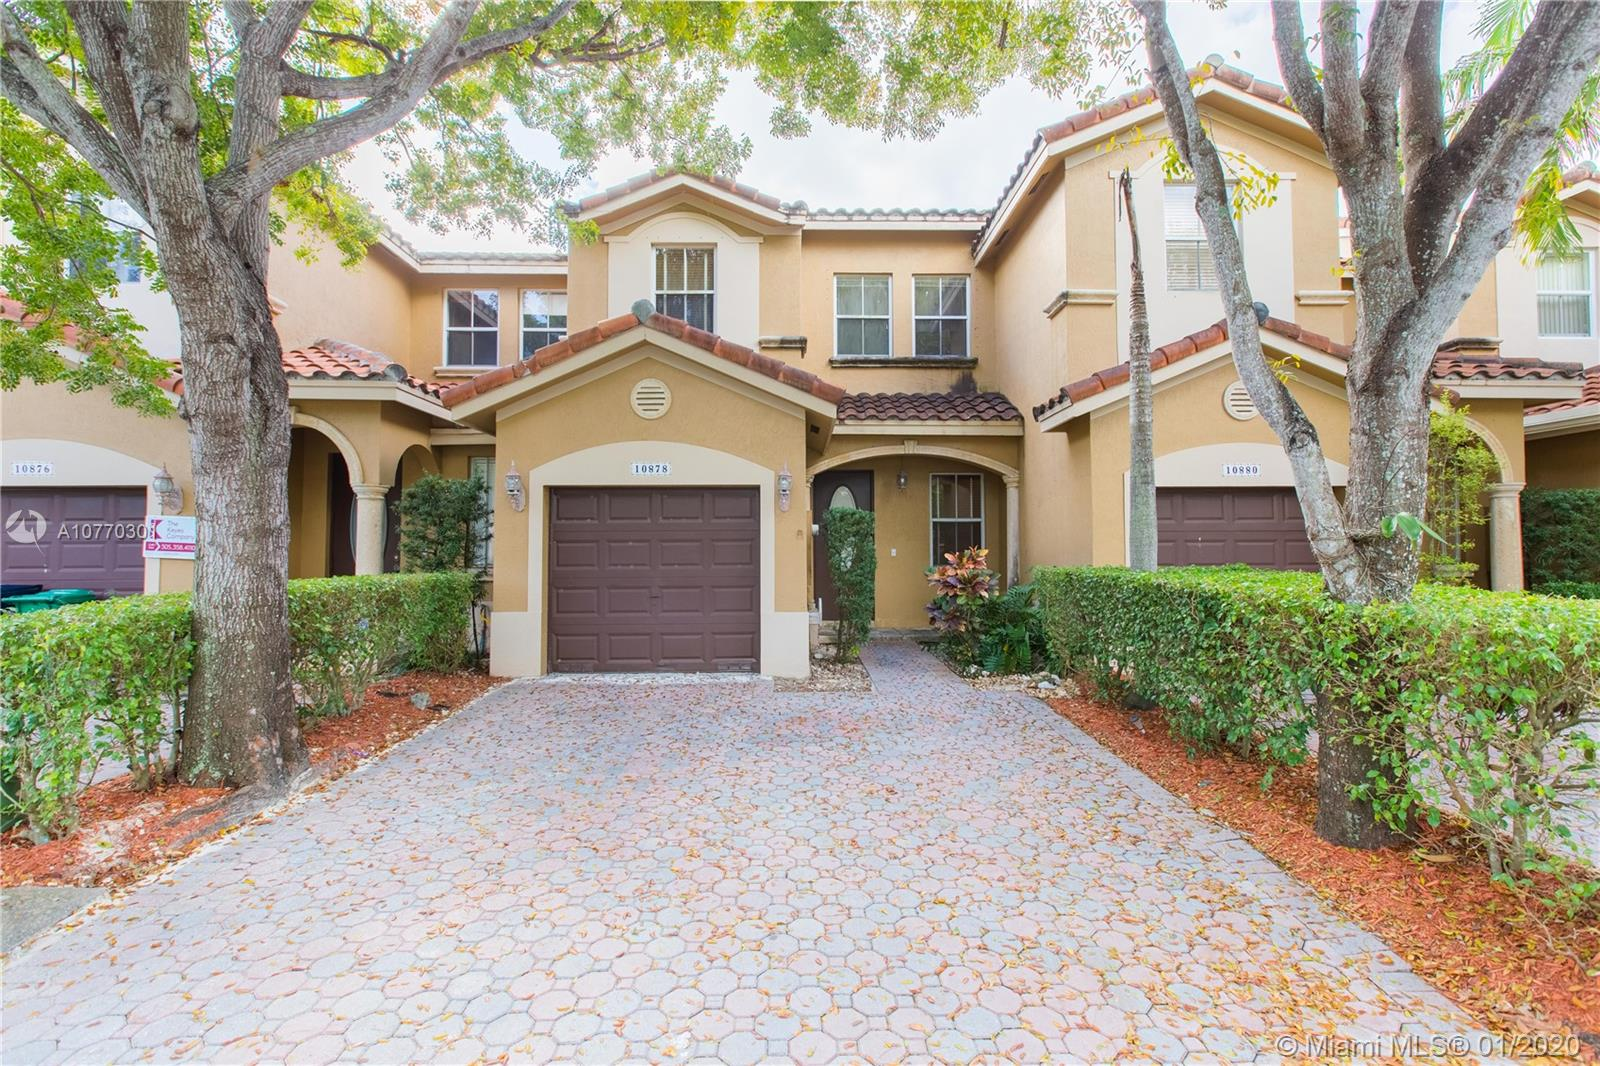 10878 SW 89th St, Kendall in Miami-dade County County, FL 33176 Home for Sale